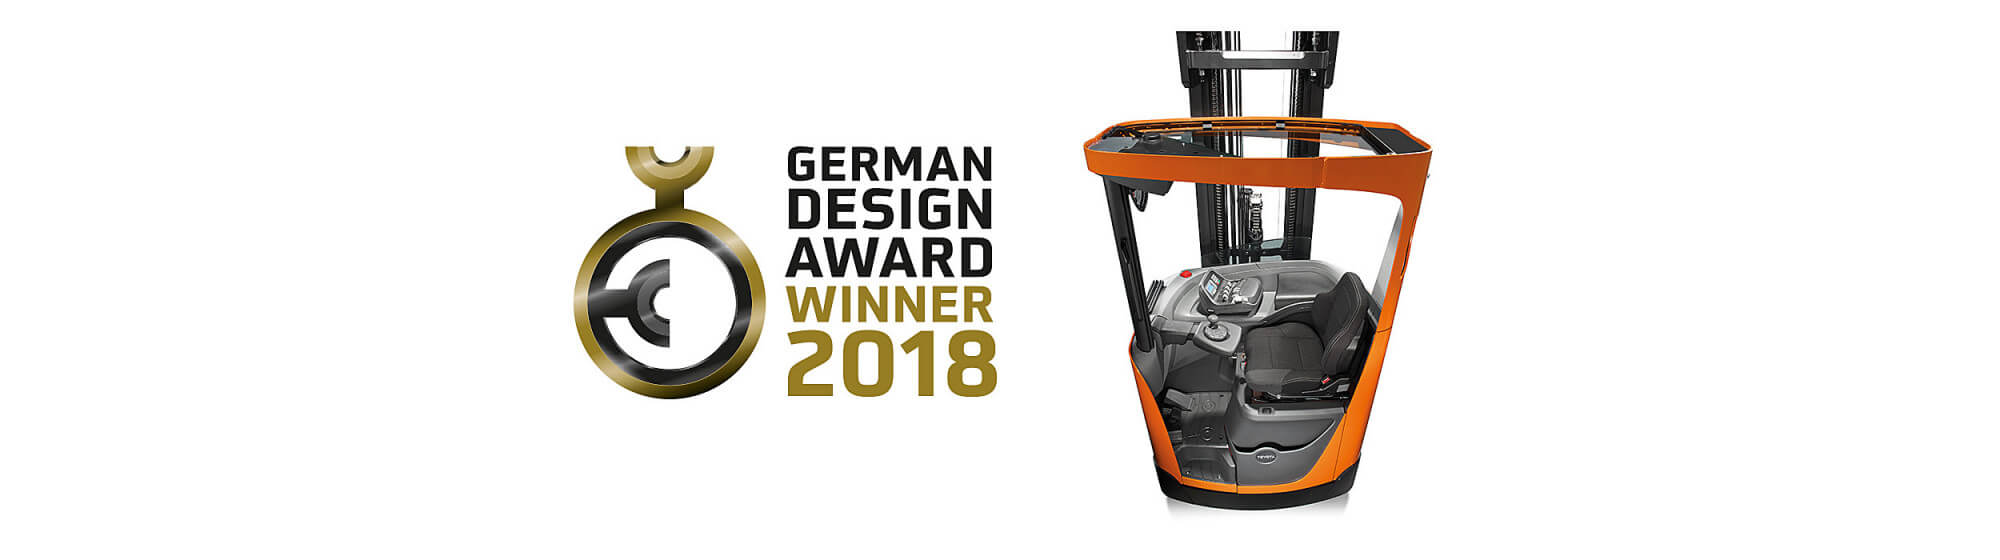 BT Reflex R-series получил награду German Design Award 2018